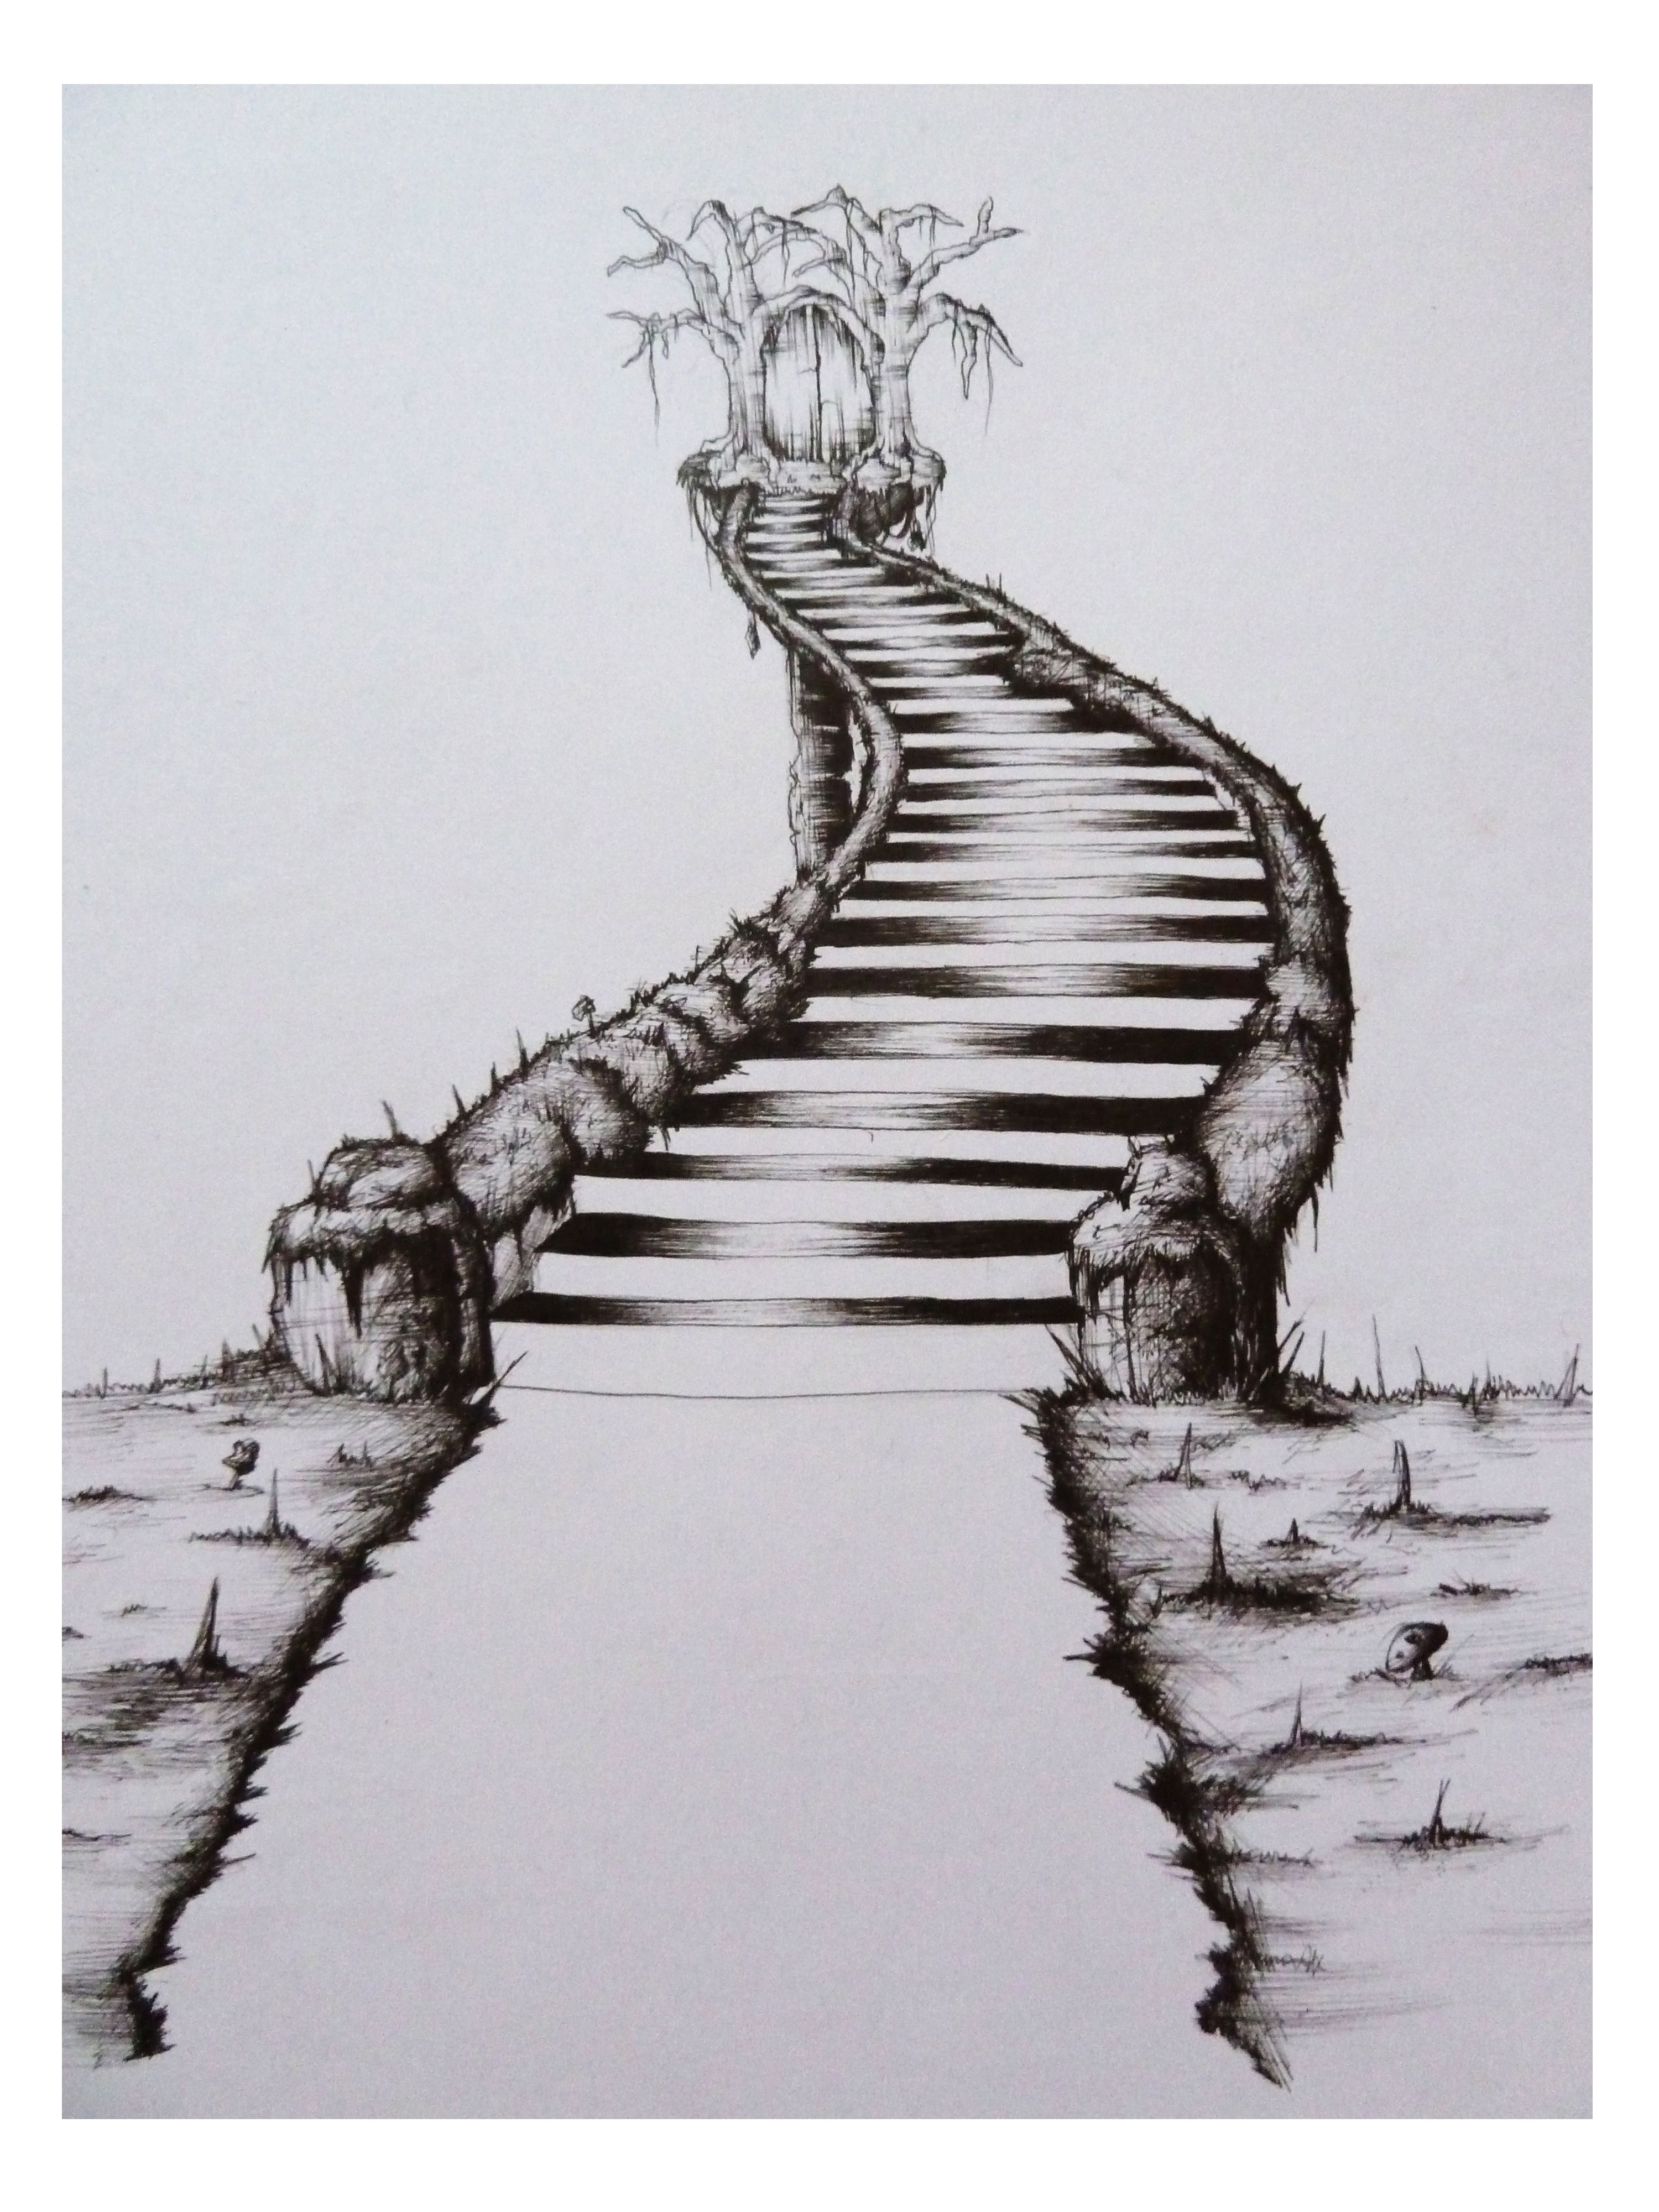 Pin By Yvonne Bayham On Stairs Stairway Art Stairway To Heaven Tattoo Stair Art